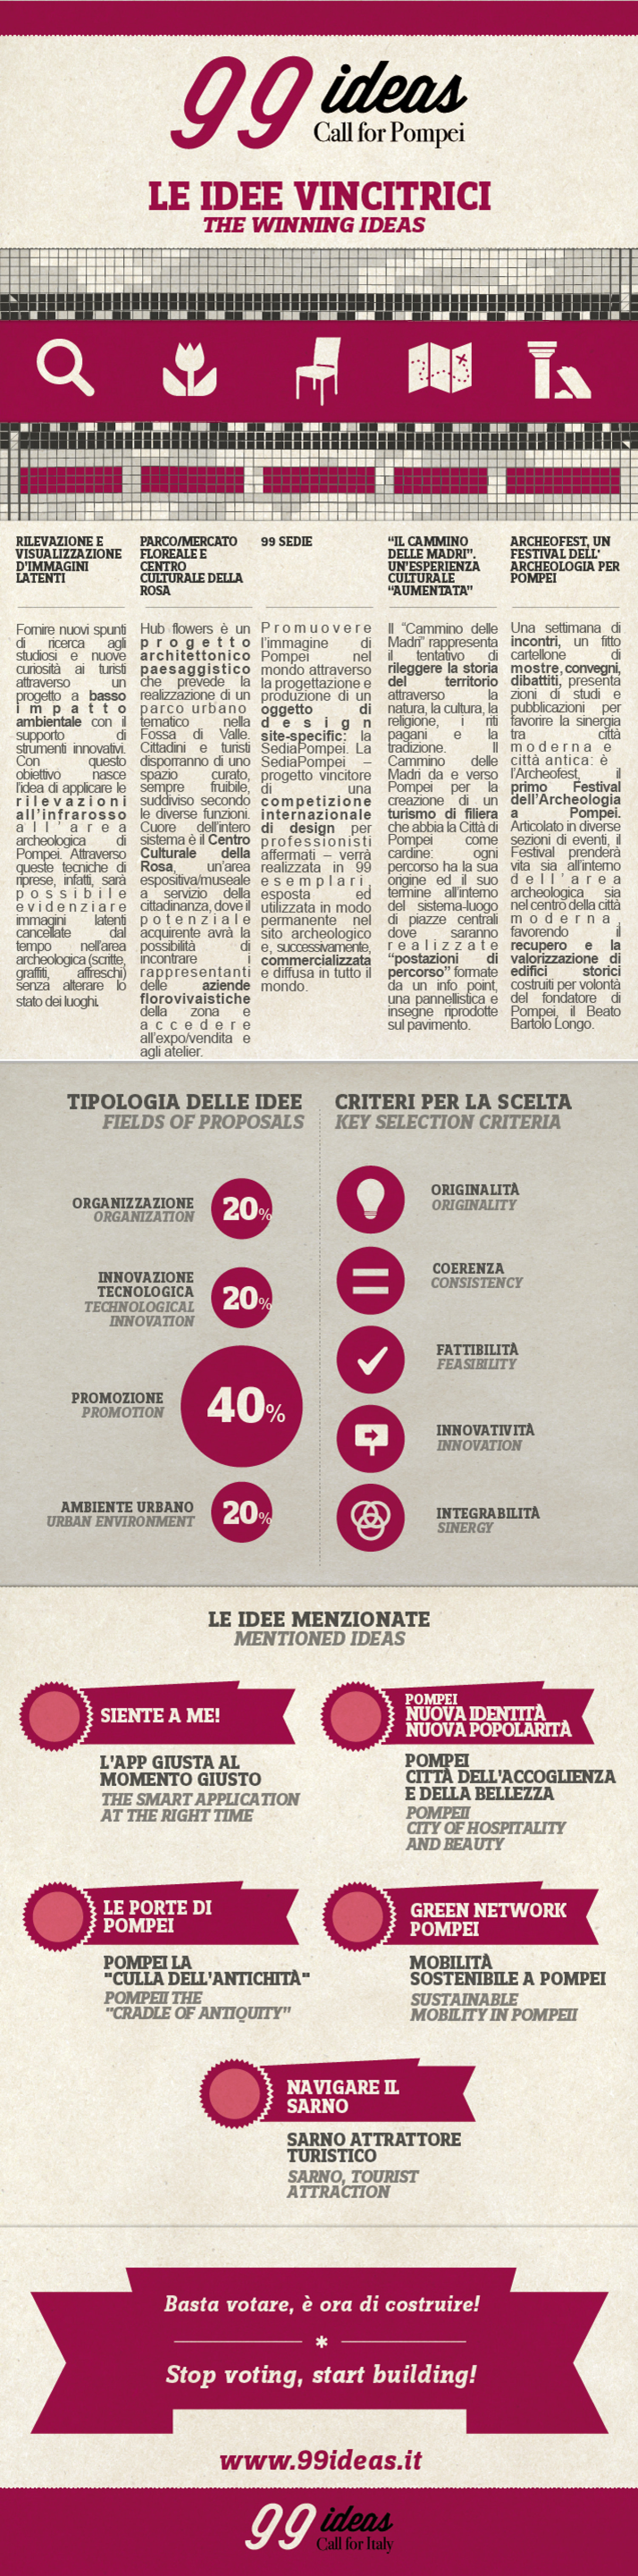 #99ideas Call for #Pompei - idee vincenti - winning ideas Infographic